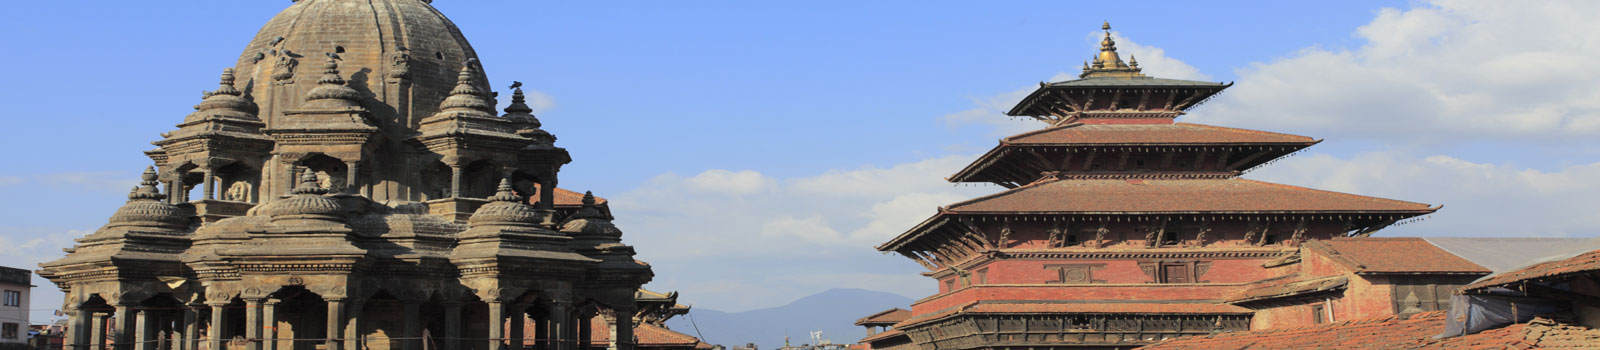 What Makes Grand Nepal Round Trip One of the Best Nepal Tour Package?